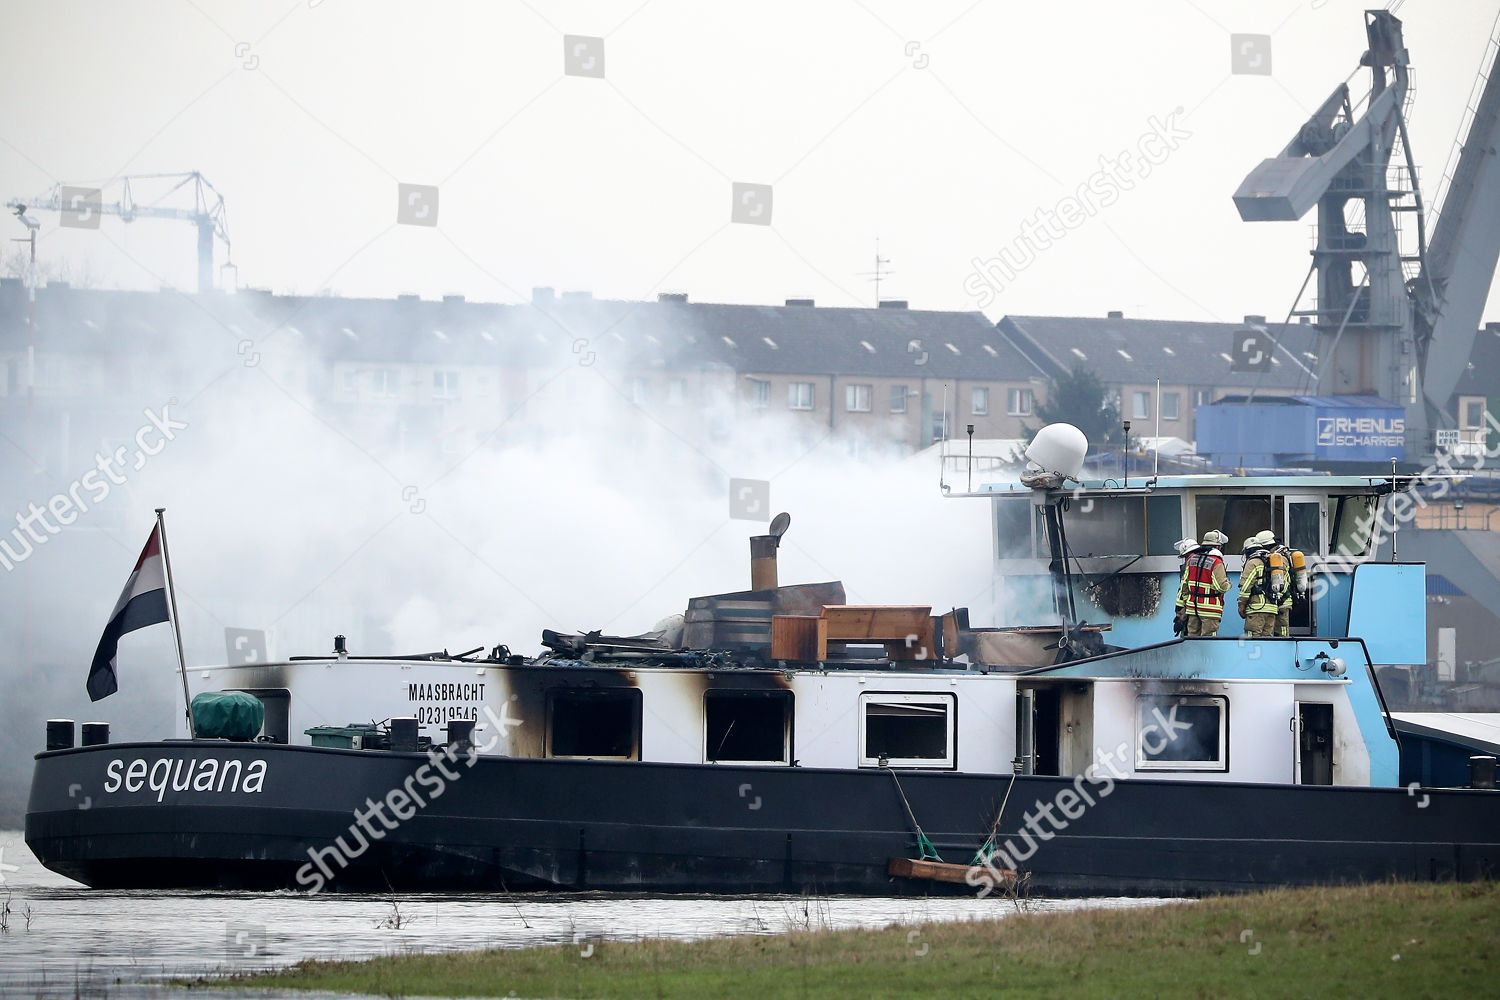 Firefighters inspect parts ship after fire Duisburg